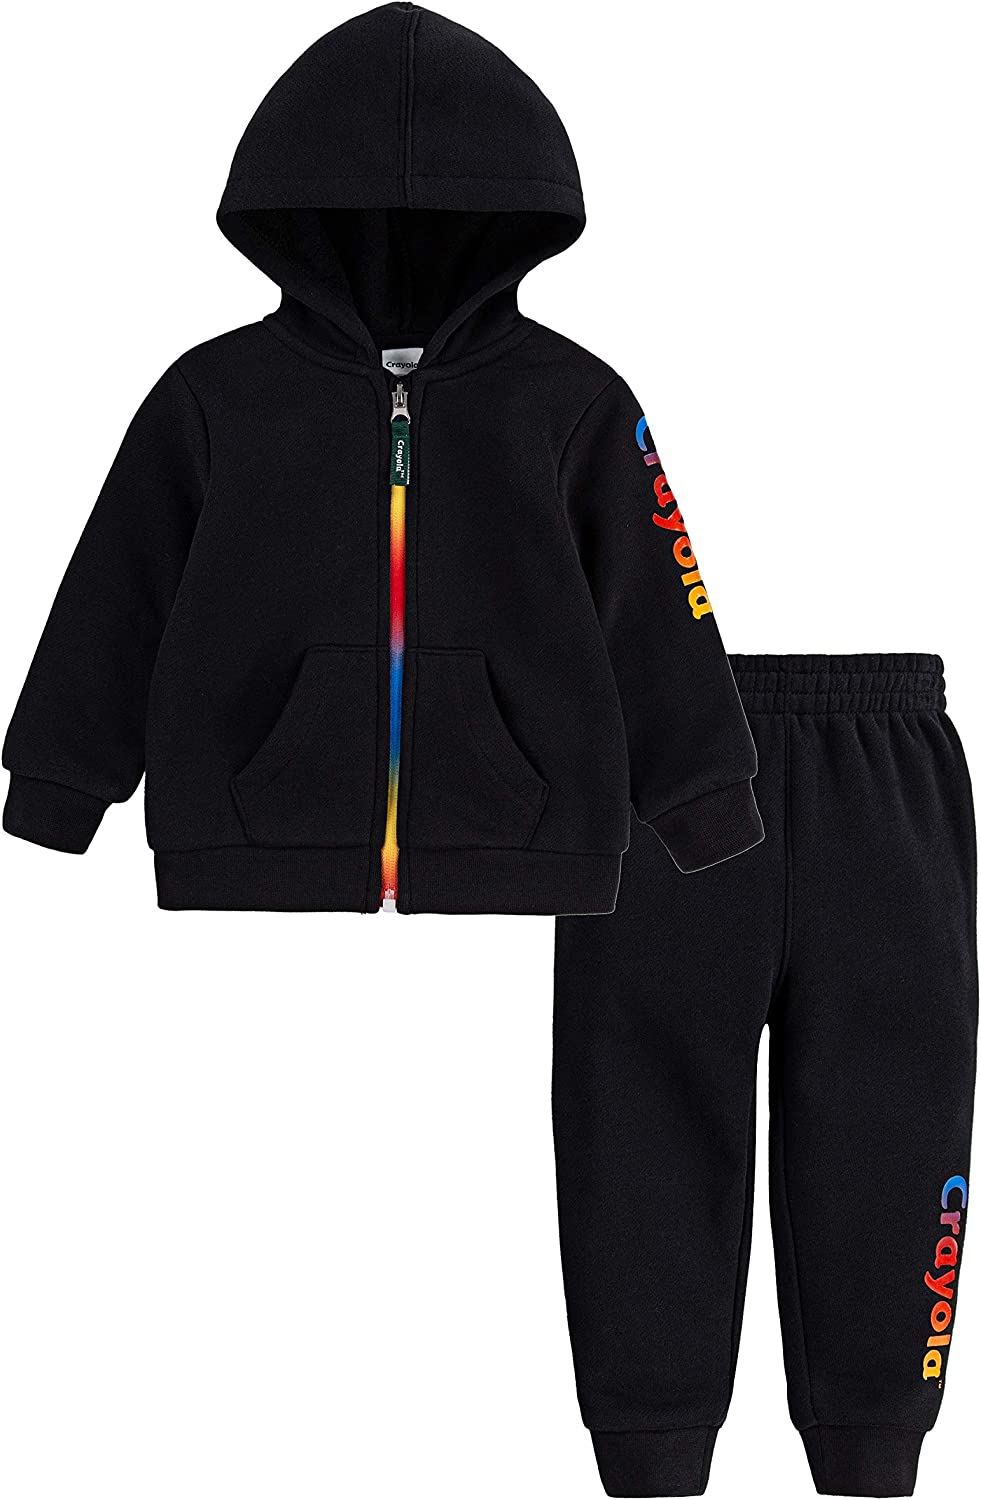 Crayola Baby Full Zip Hoodie and Jogger Pants 2-Piece Outfit Set, Black/Rainbow, 12M